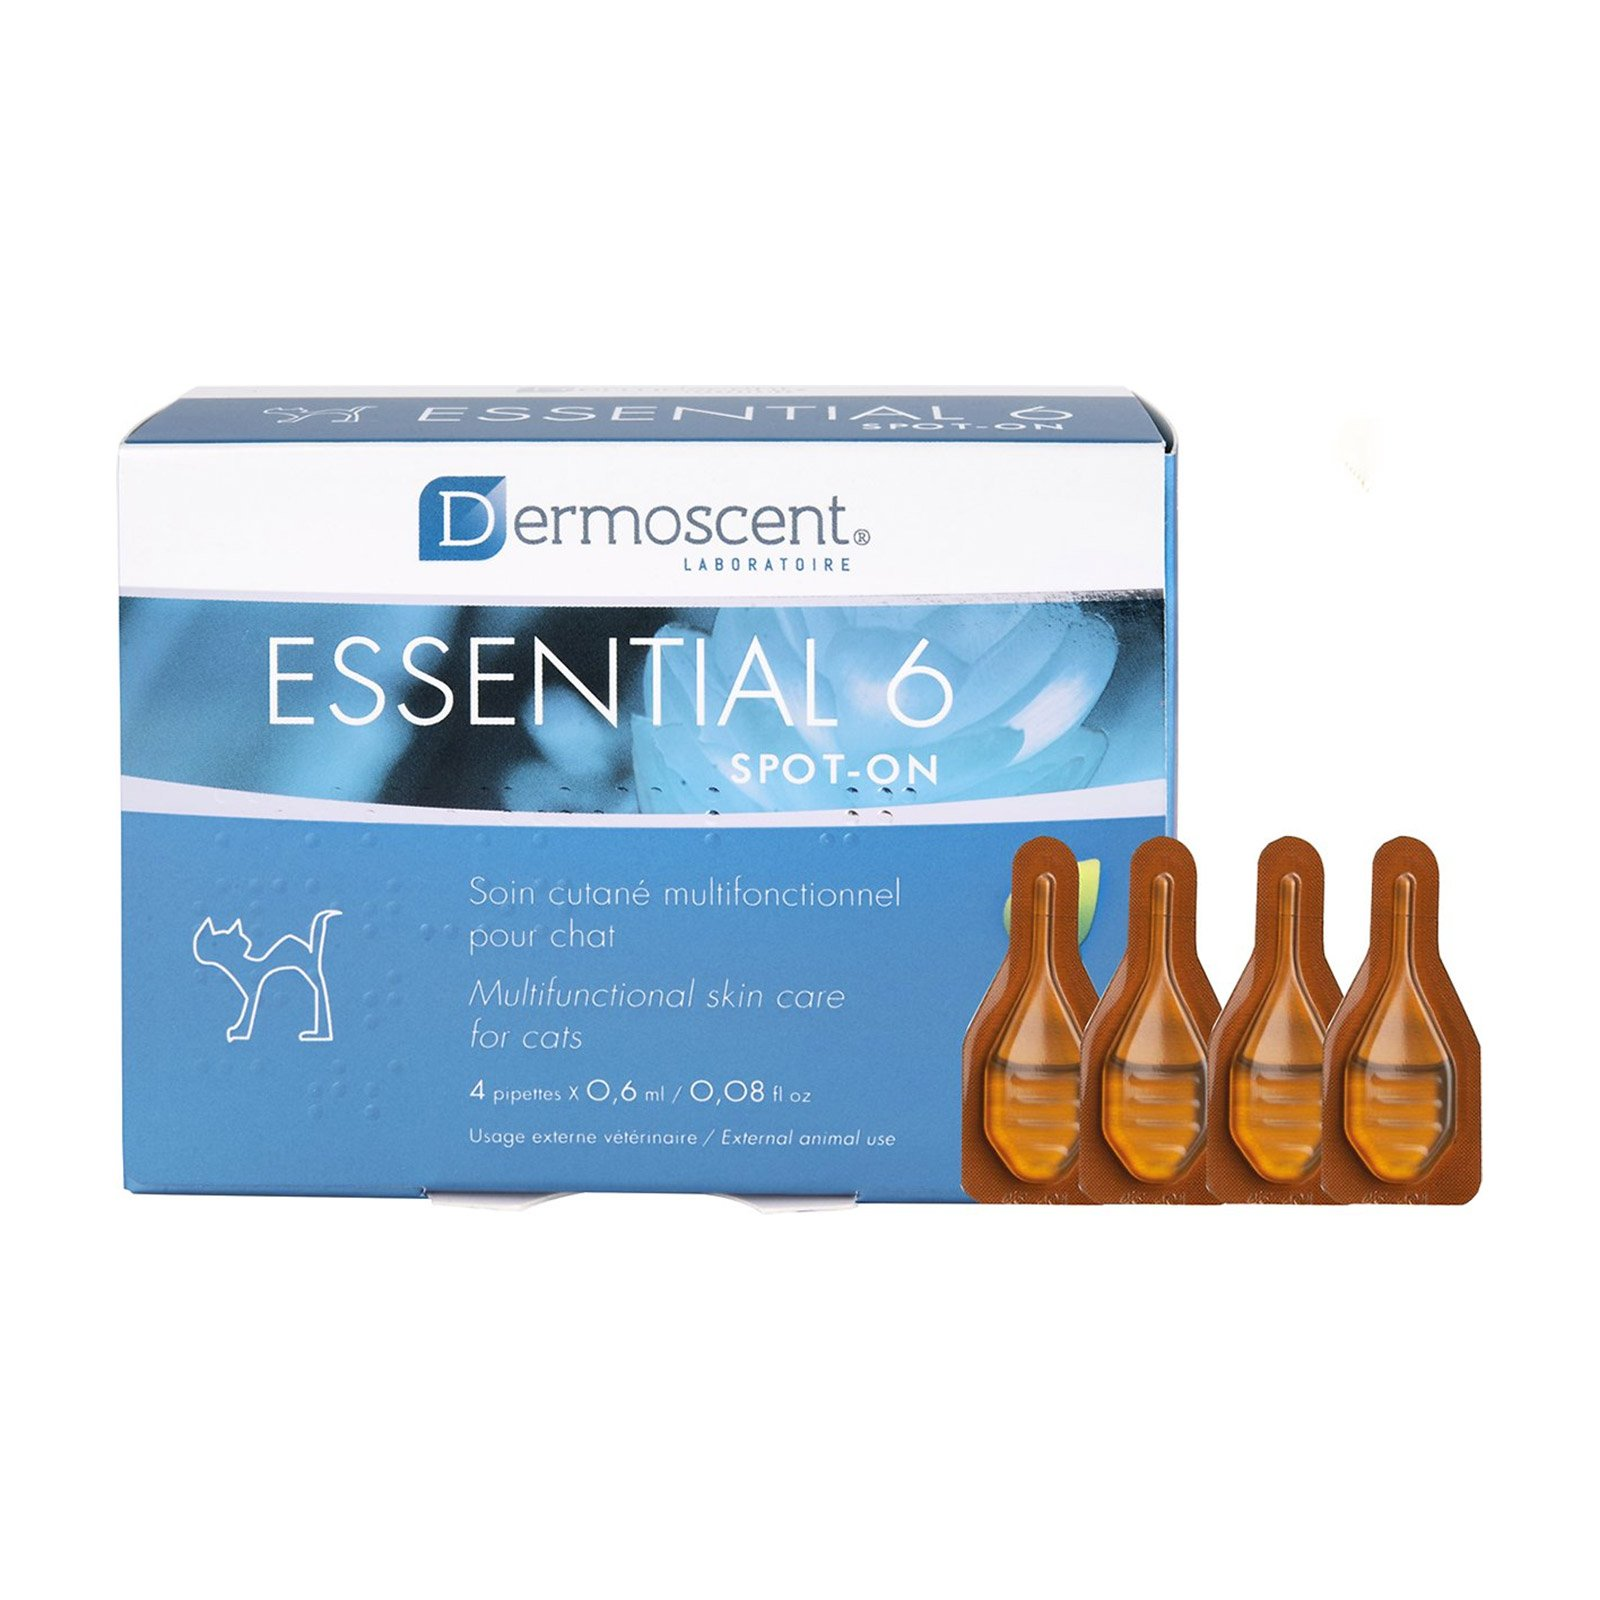 Dermoscent-Essential-6-for-cats